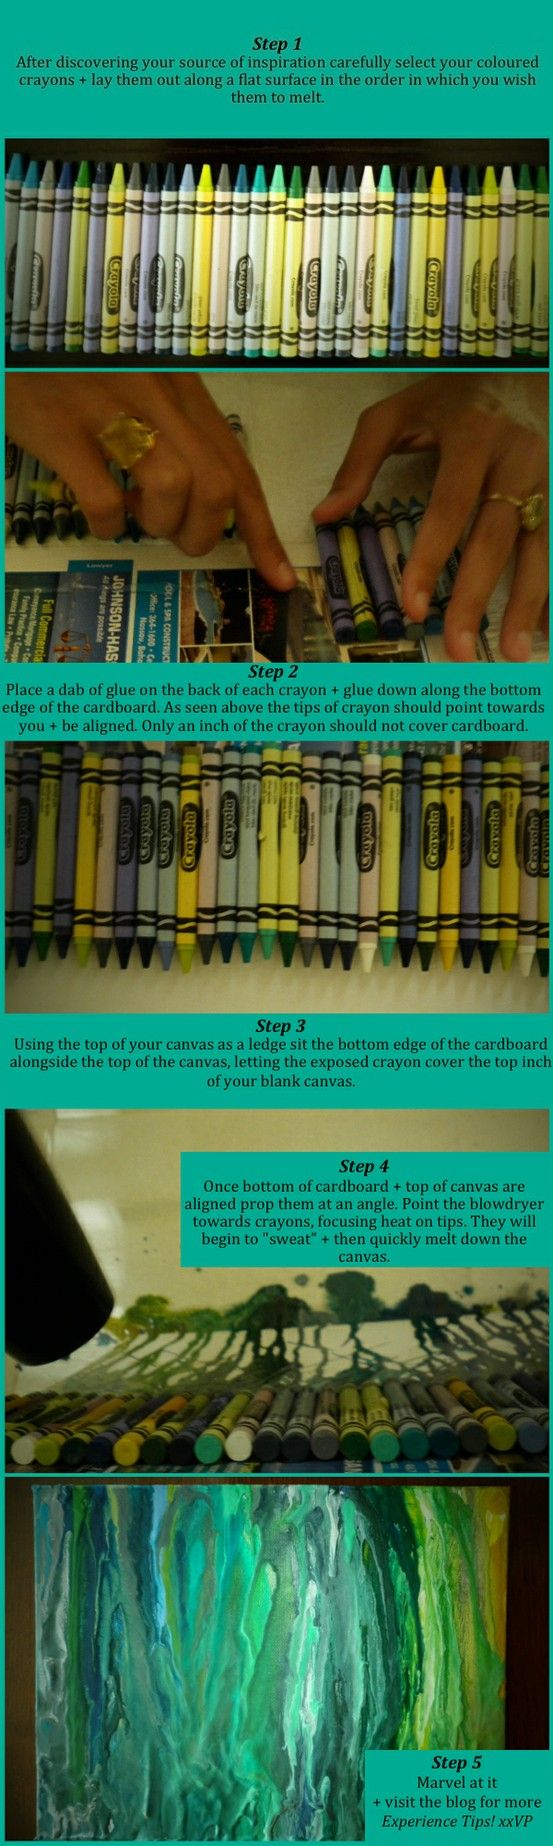 How to make melted crayon gluing the crayon to the canvas. pretty and random…